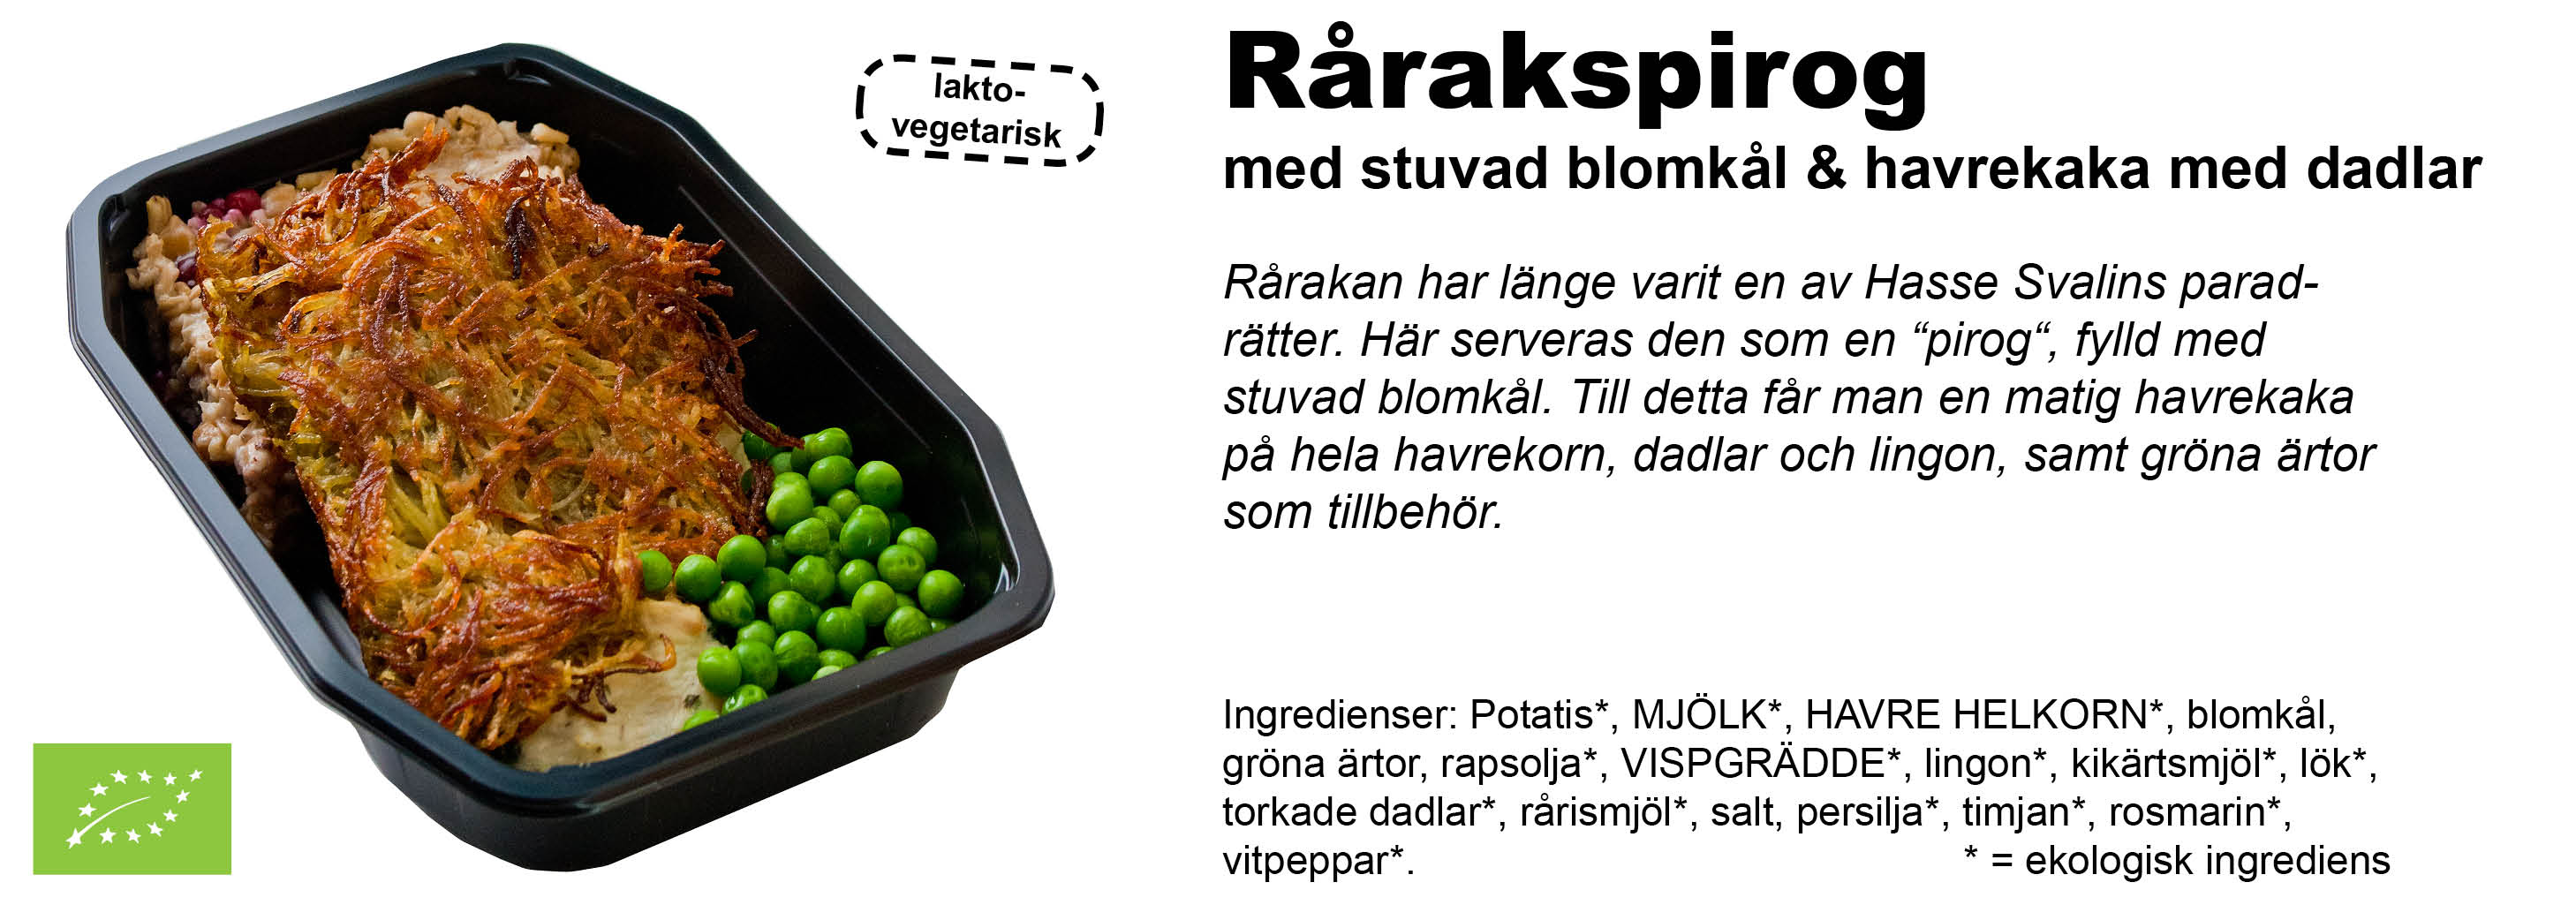 Ny_Rårakspirog_ingredienser